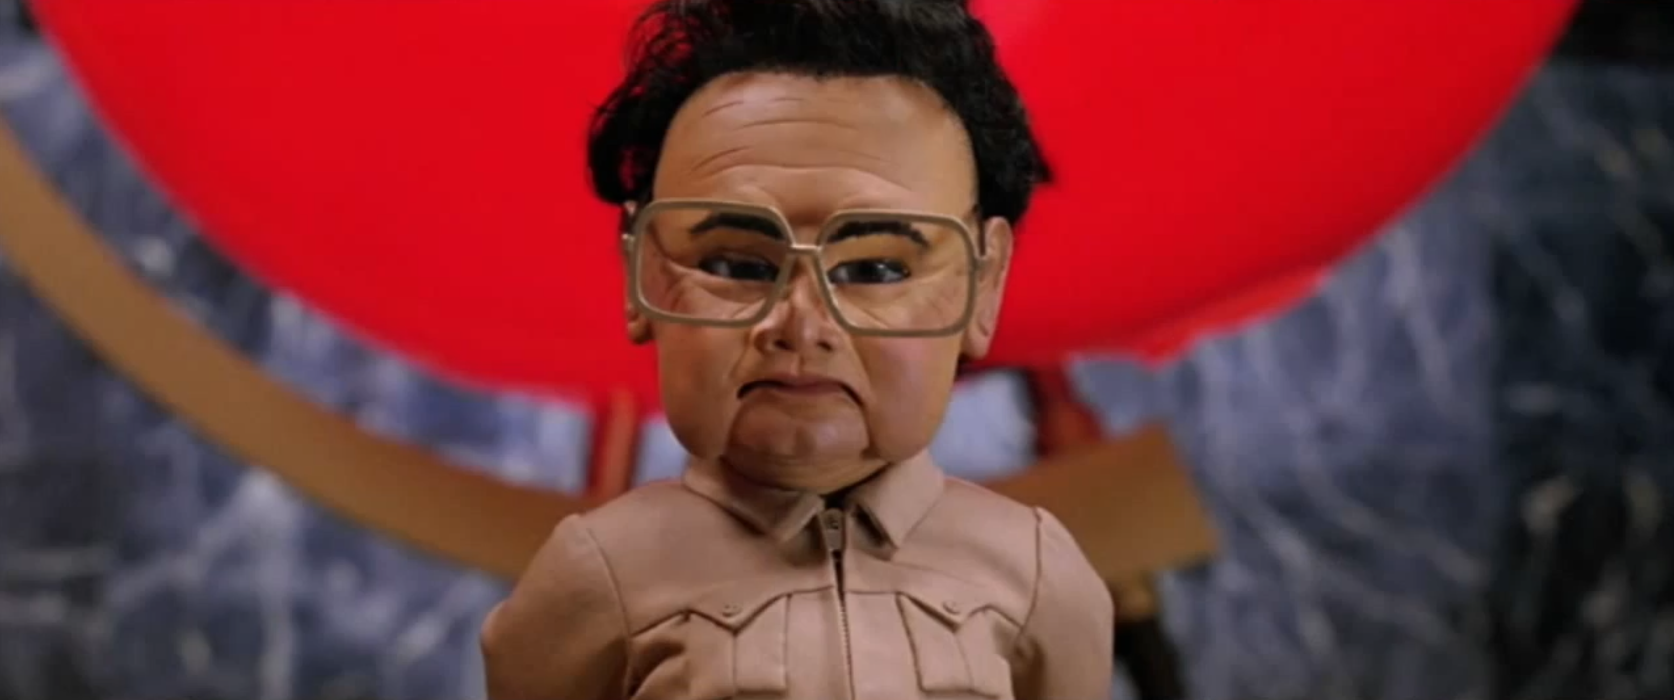 Team_America_World_Police_Kim_Jong-il.png